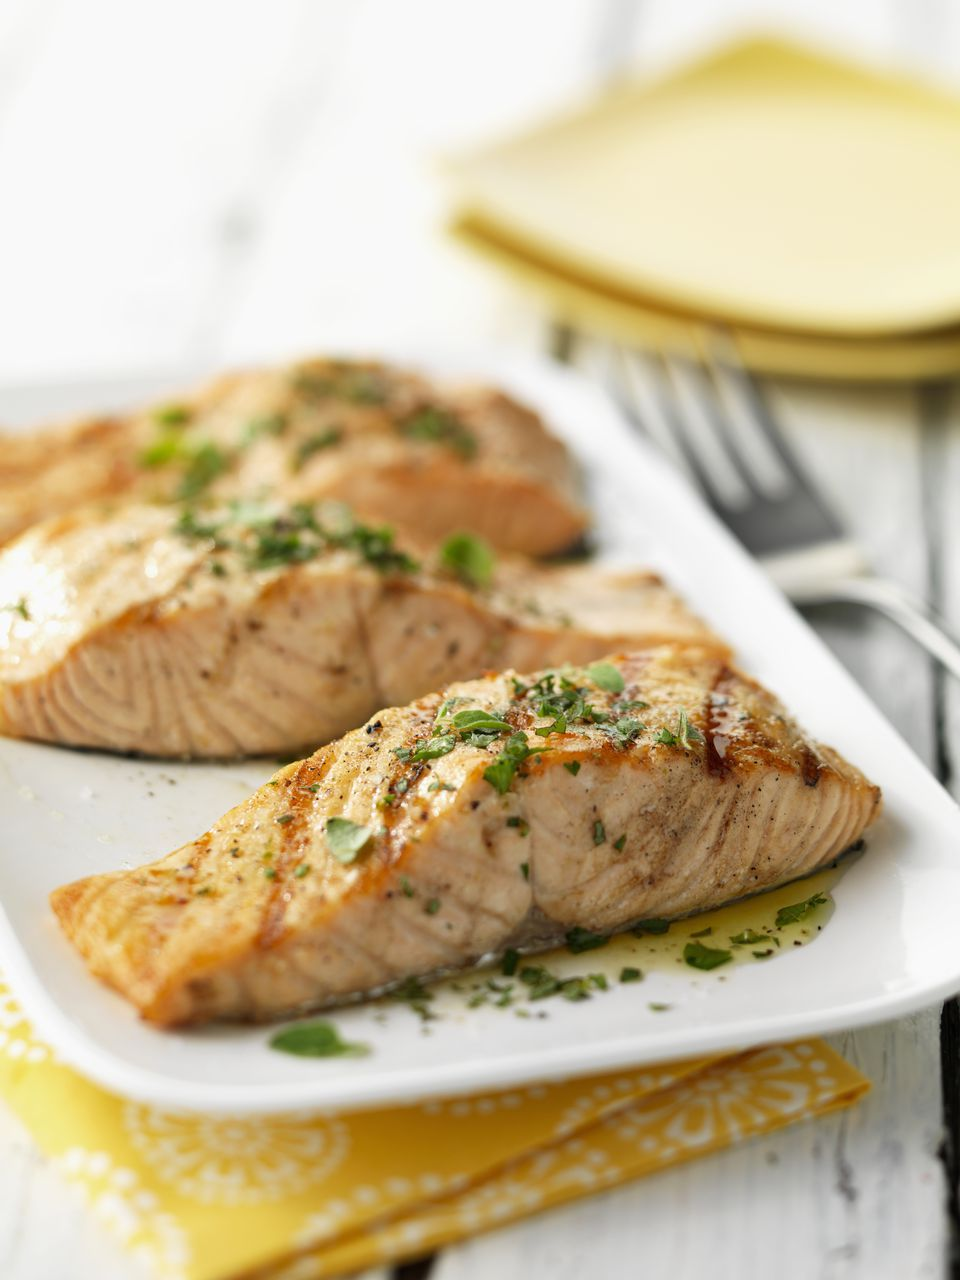 Salmon with a citrus-balsamic vinaigrette on a plate